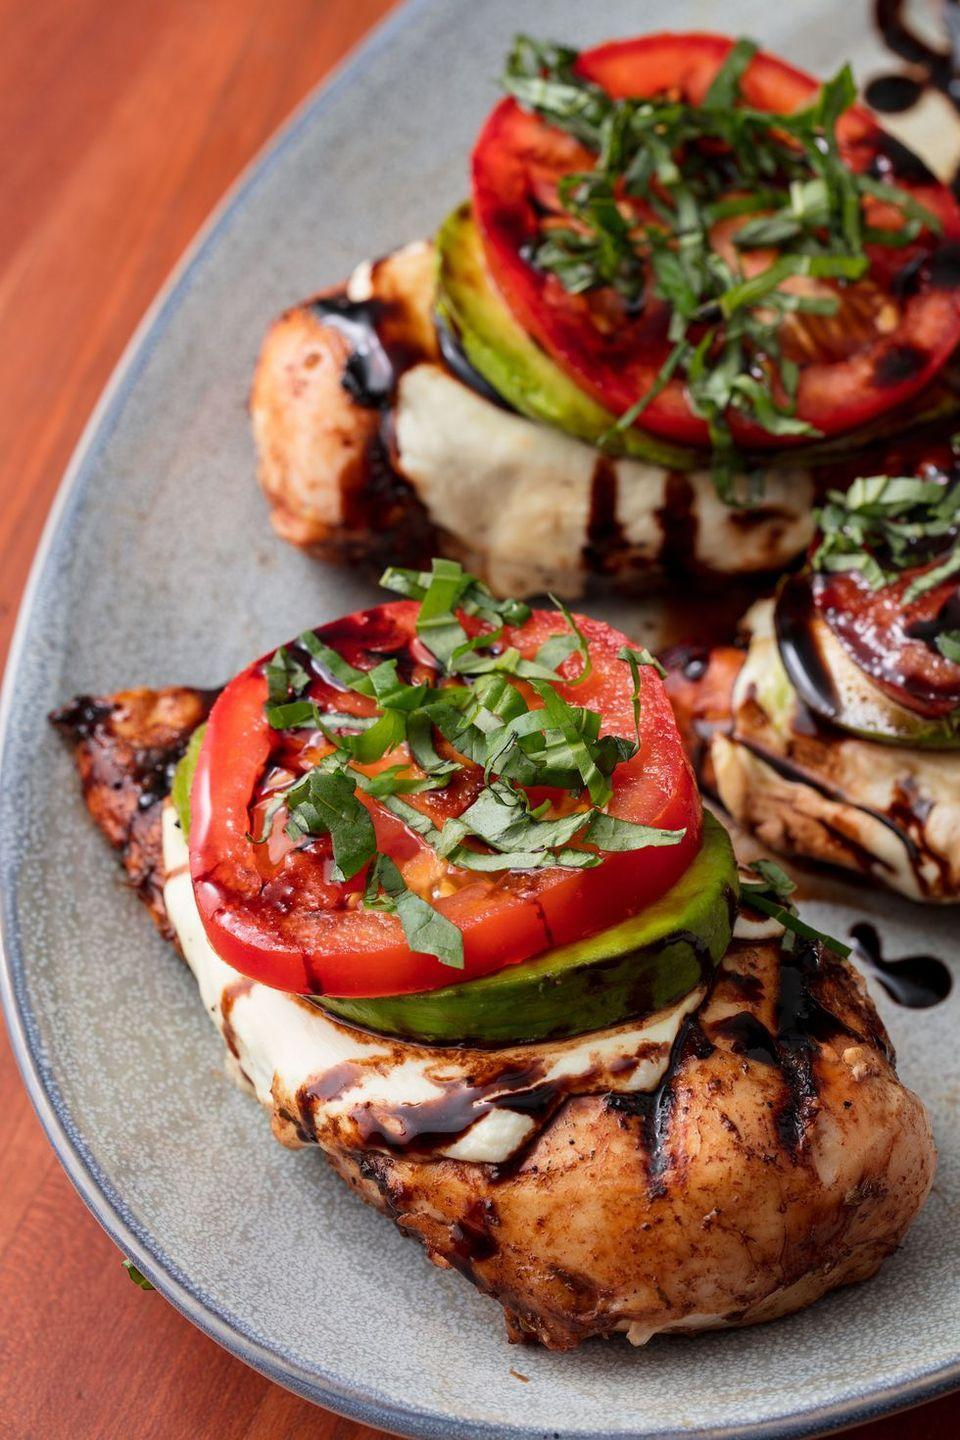 """<p>The dream team back together again.</p><p>Get the recipe from <a href=""""https://www.delish.com/cooking/recipe-ideas/recipes/a53158/california-grilled-chicken-recipe/"""" rel=""""nofollow noopener"""" target=""""_blank"""" data-ylk=""""slk:Delish"""" class=""""link rapid-noclick-resp"""">Delish</a>.</p>"""